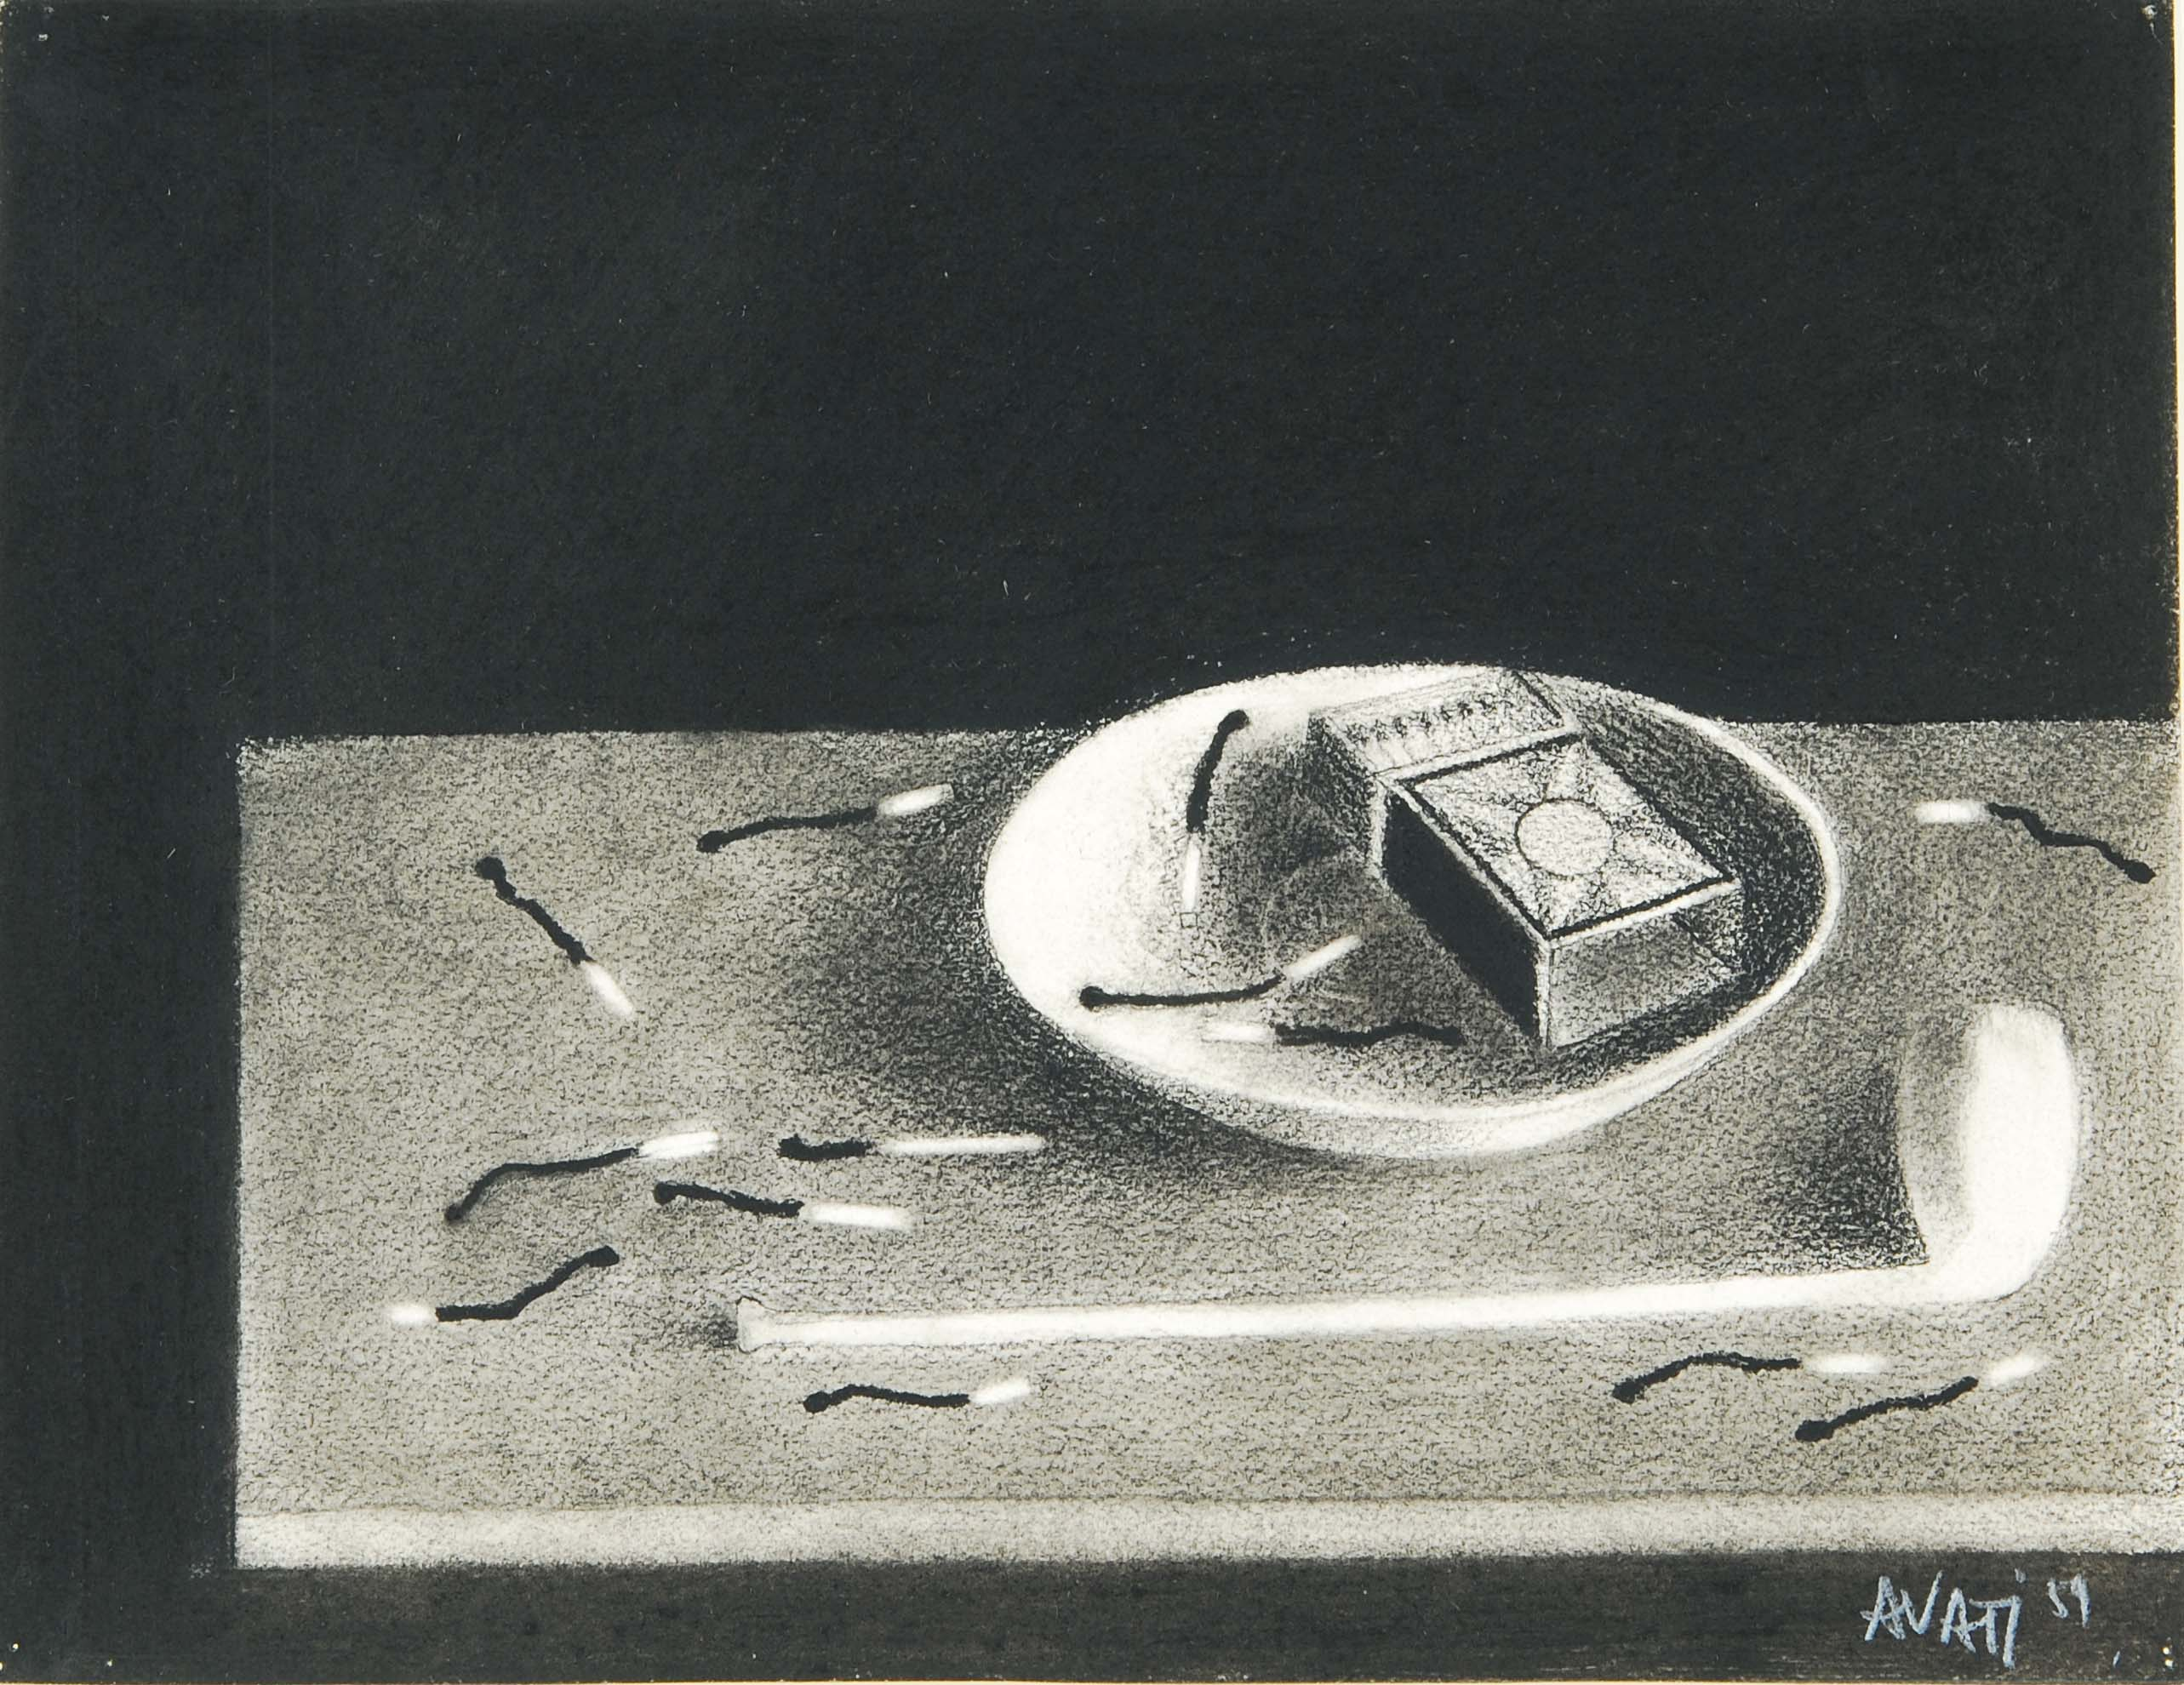 Mario Avati, Still Life with Matches, 1959